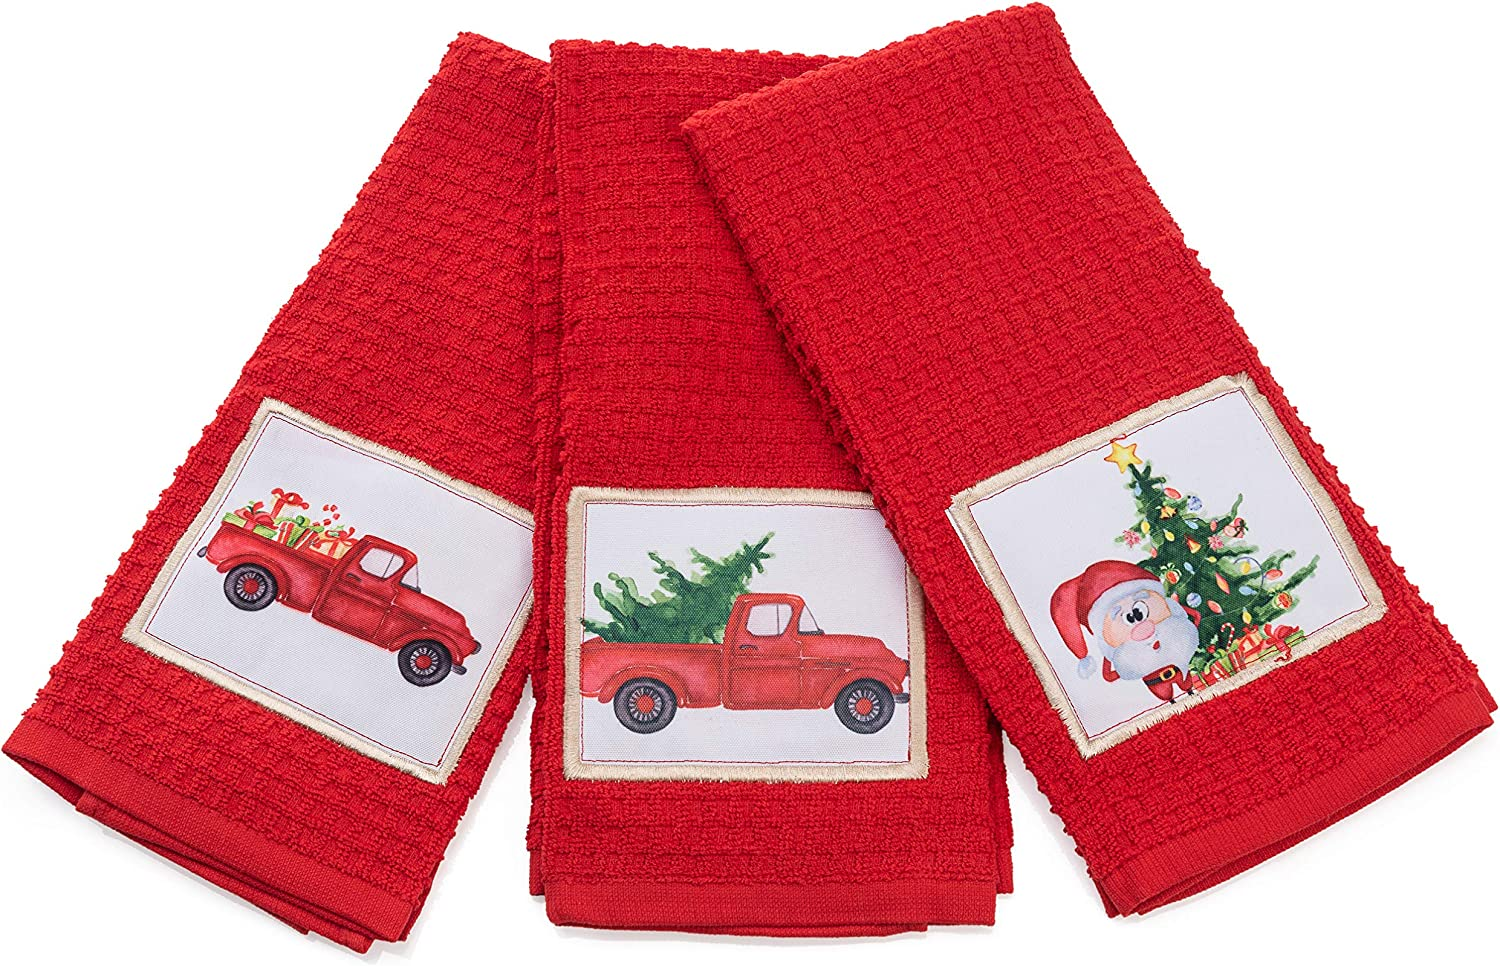 Christmas Kitchen Towels, Decorative Holiday Christmas Dish Towels Set of 3, Perfect Home & Kitchen Gift: Home & Kitchen